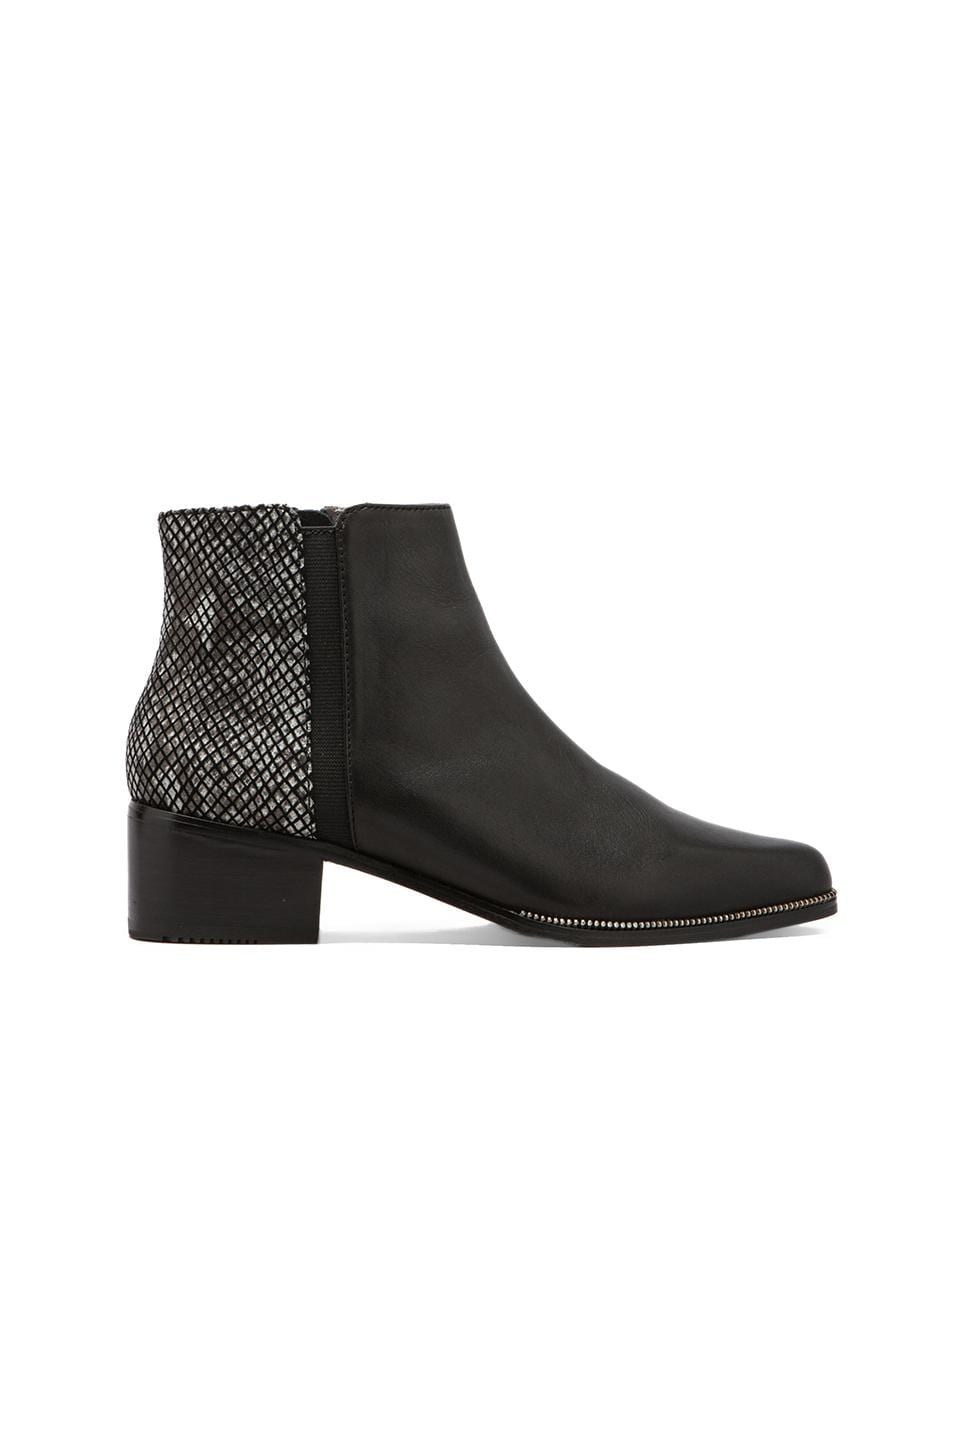 GREY CITY Walker Bootie in Black Cut Snake/Black